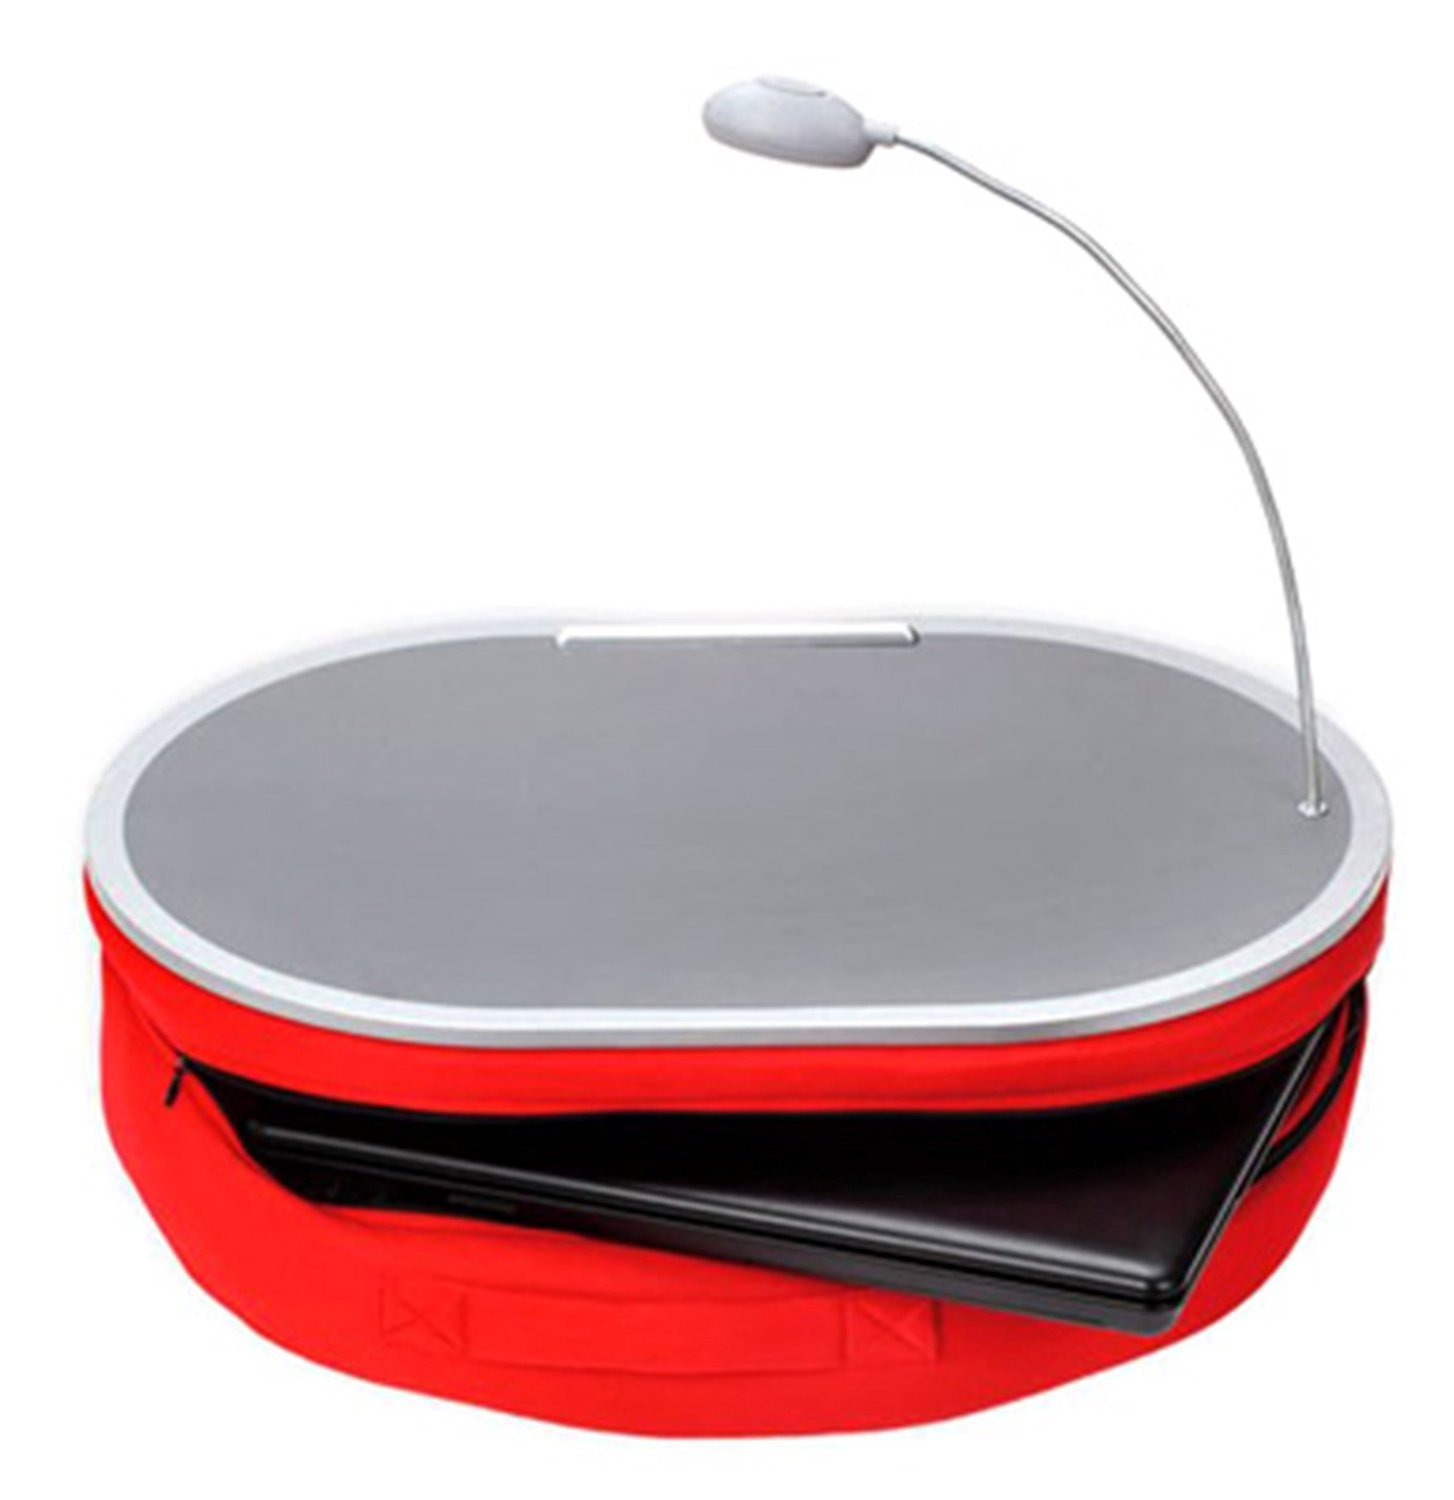 Deluxe Comfort Portable Lap Desk With LED Lamp, 18'' x 15'' - Handy Zippered Storage - Laptop Lapdesk, Red